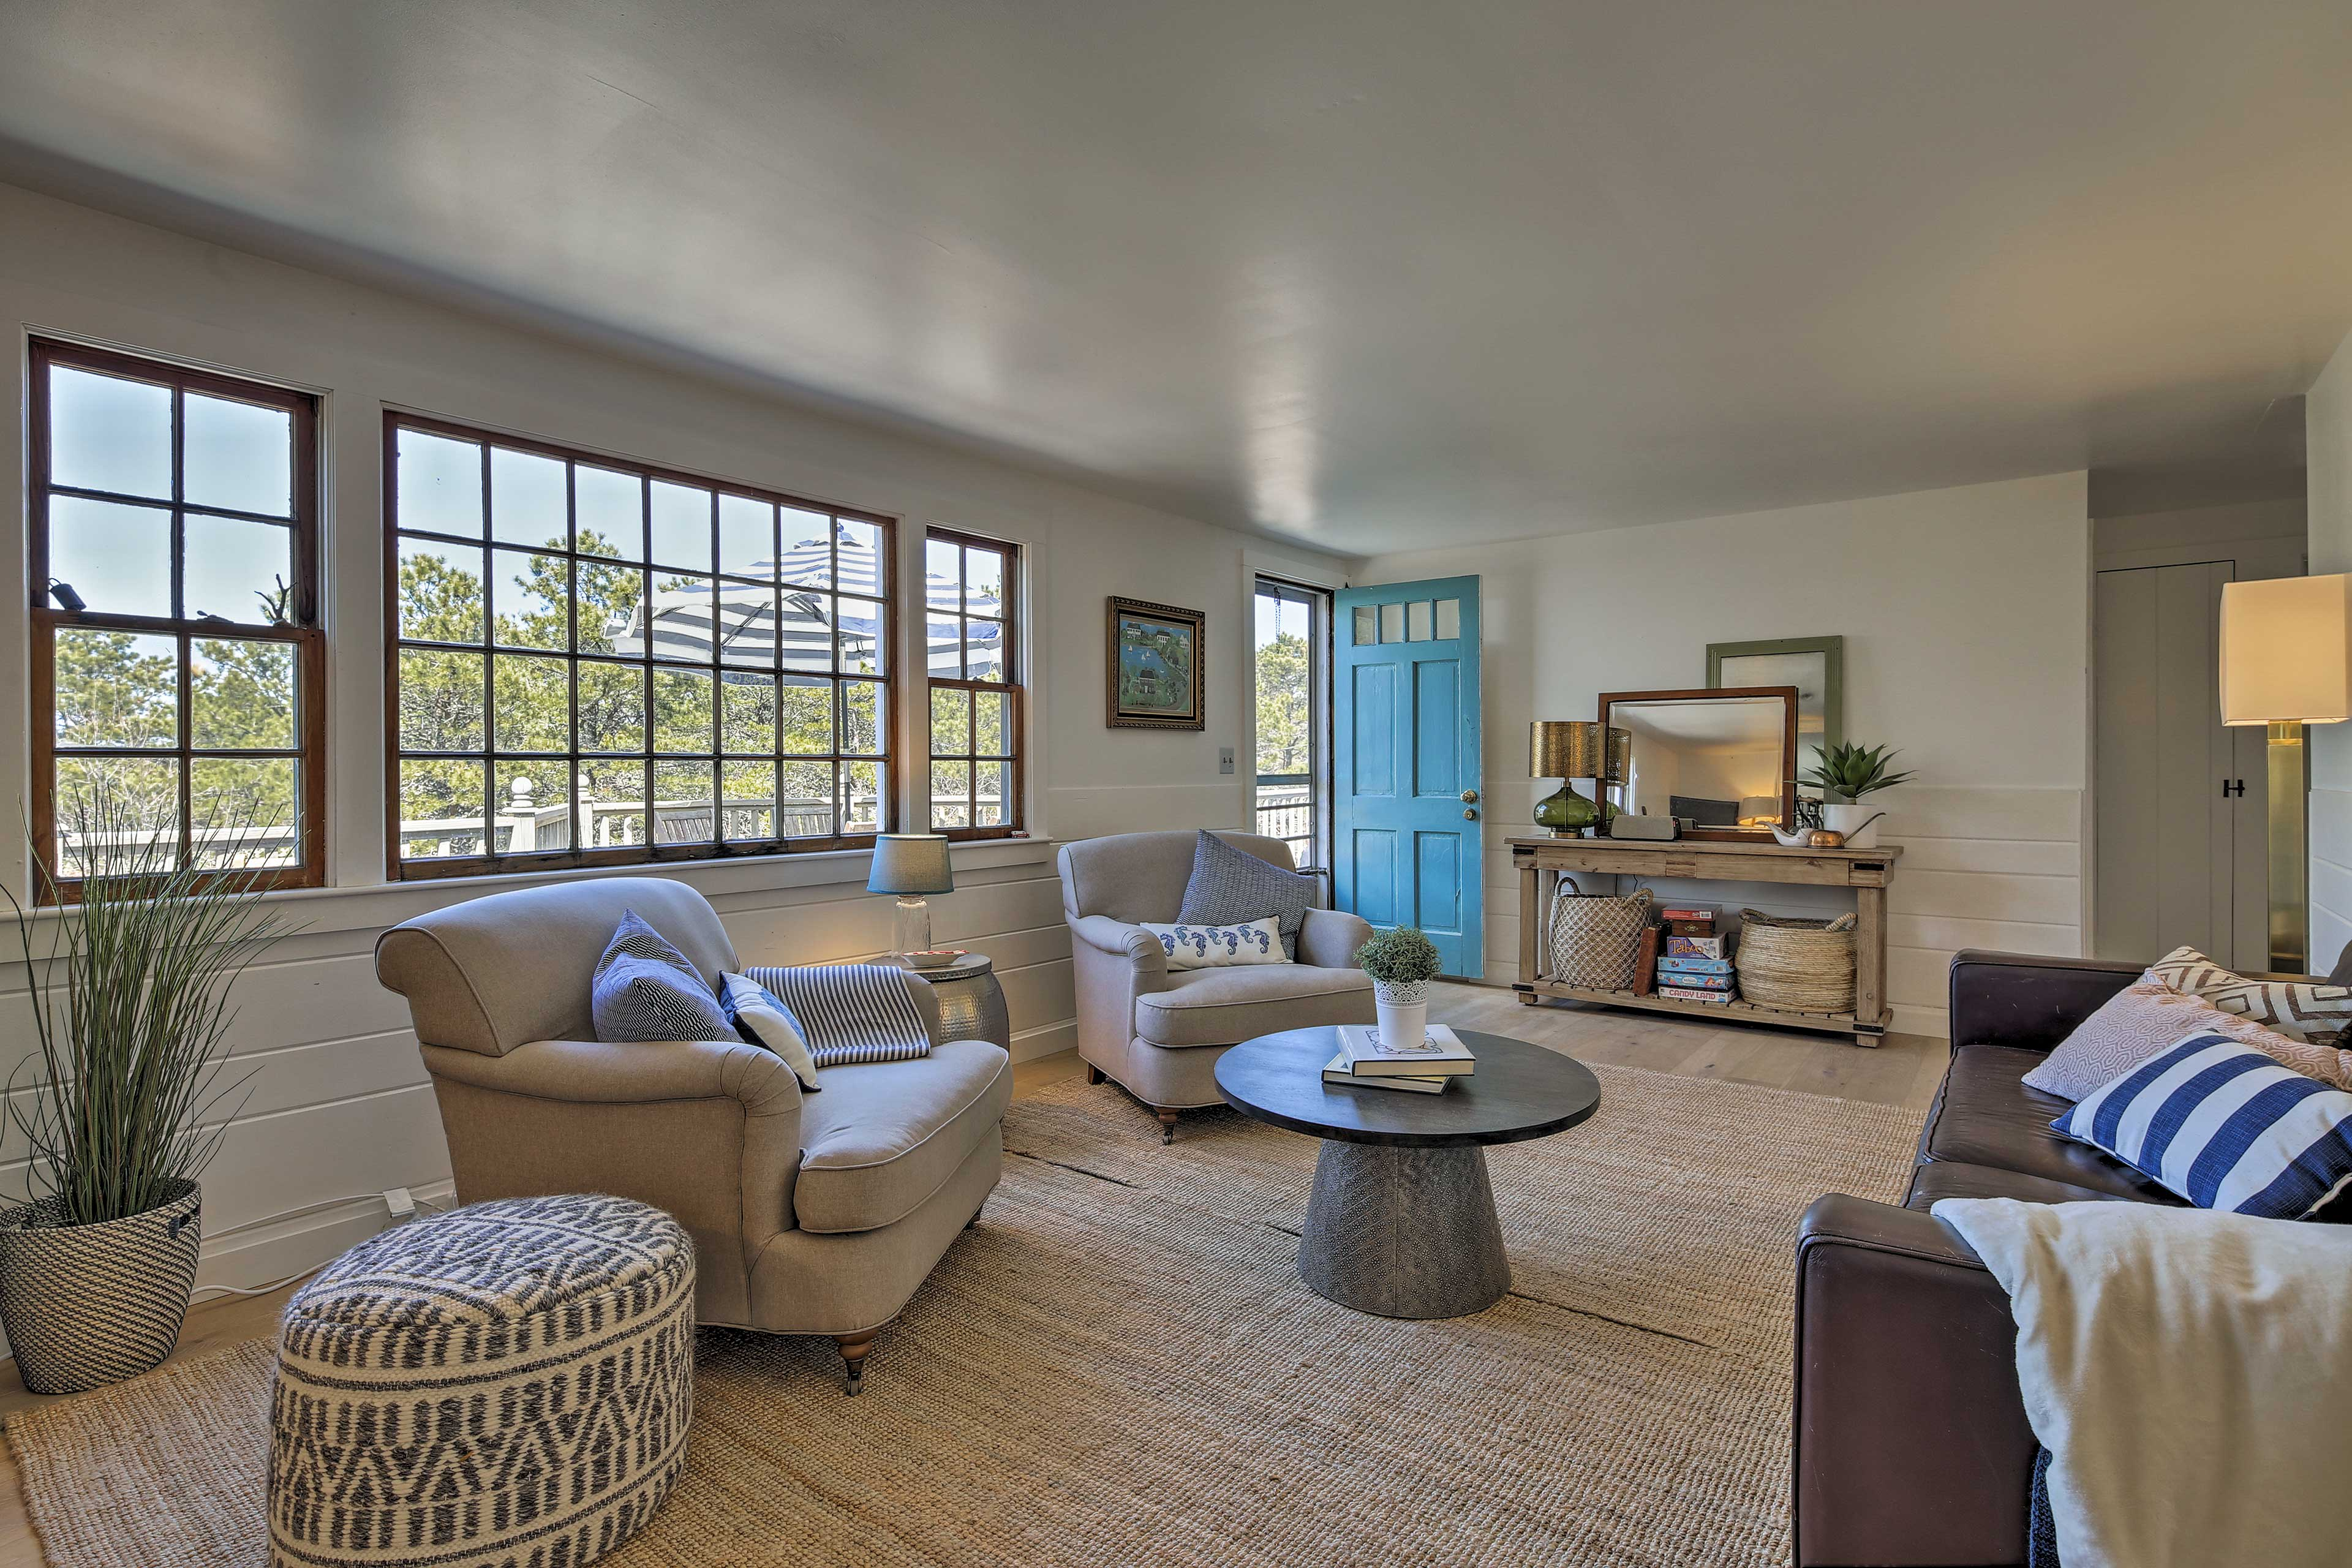 Large picture windows flood the living area with natural light.